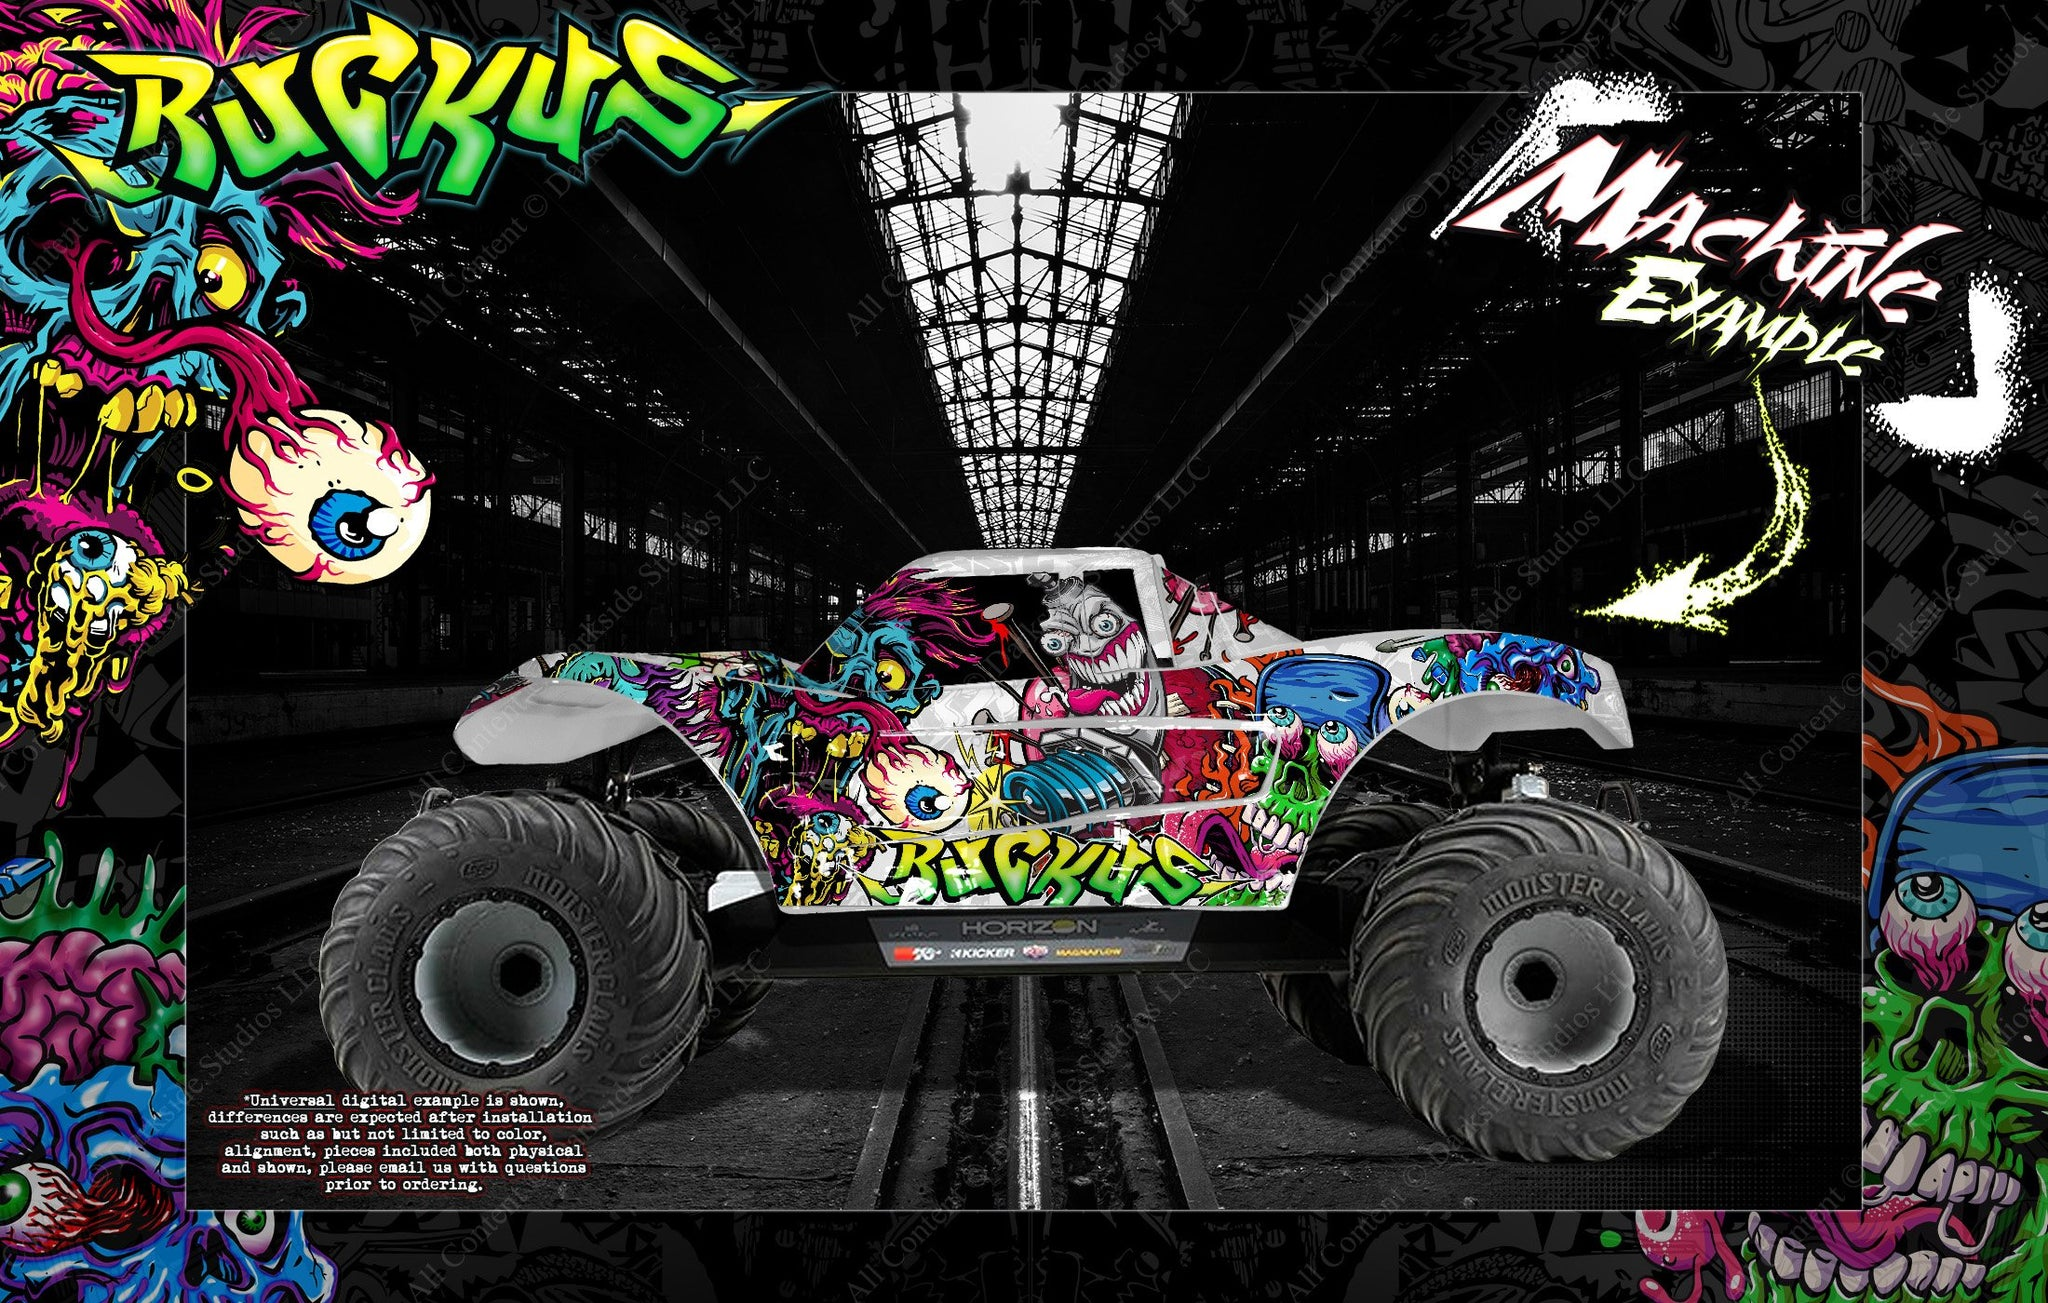 LOSI MTXL MONSTER TRUCK WRAP DECAL HOP-UP CUSTOM KIT PARTS 'RUCKUS' FITS  LOS250015 BODY